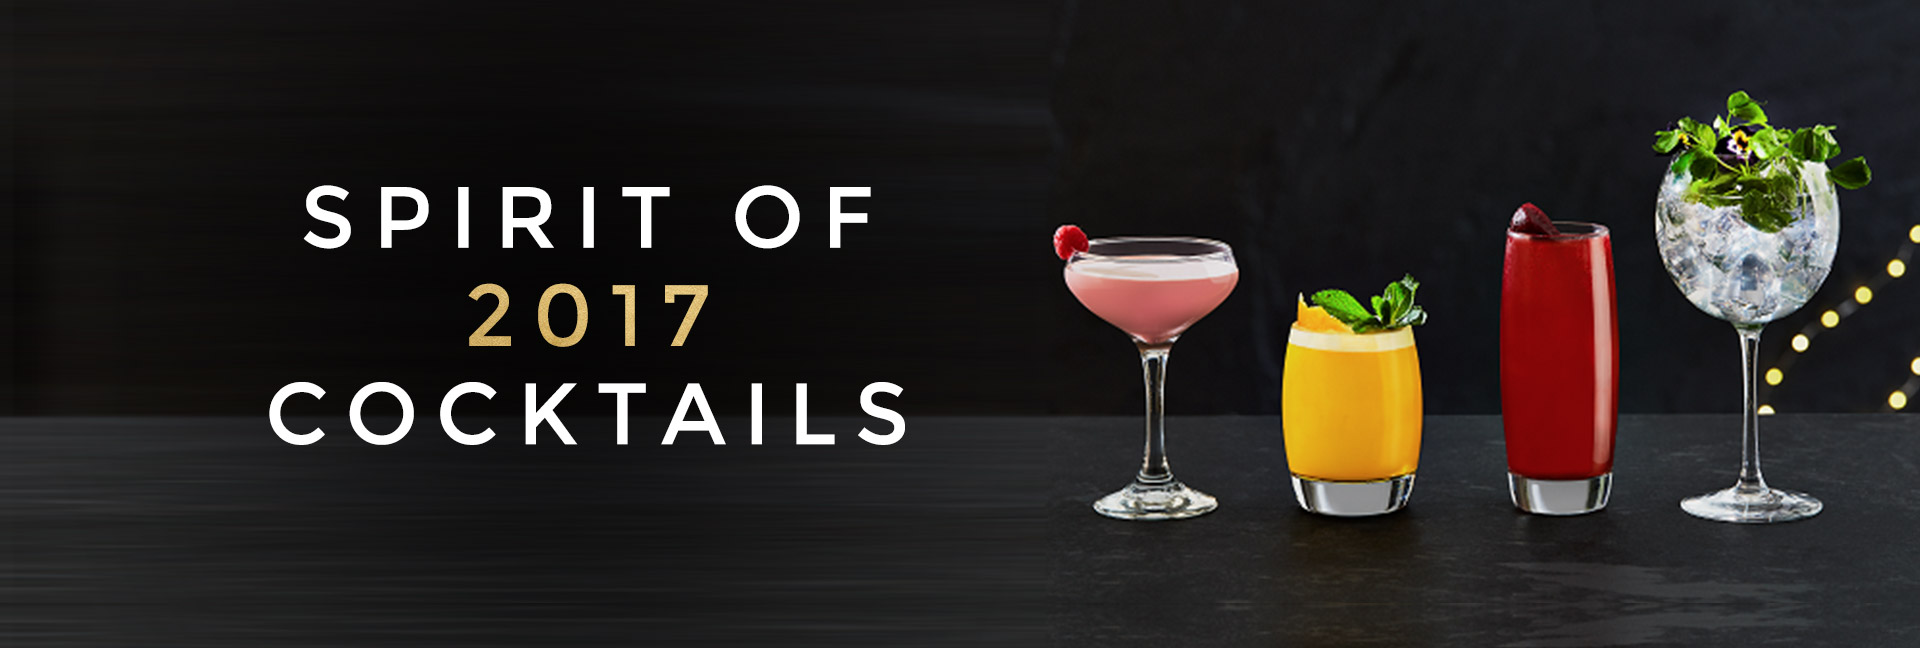 Spirit of 2017 cocktails at All Bar One Manchester